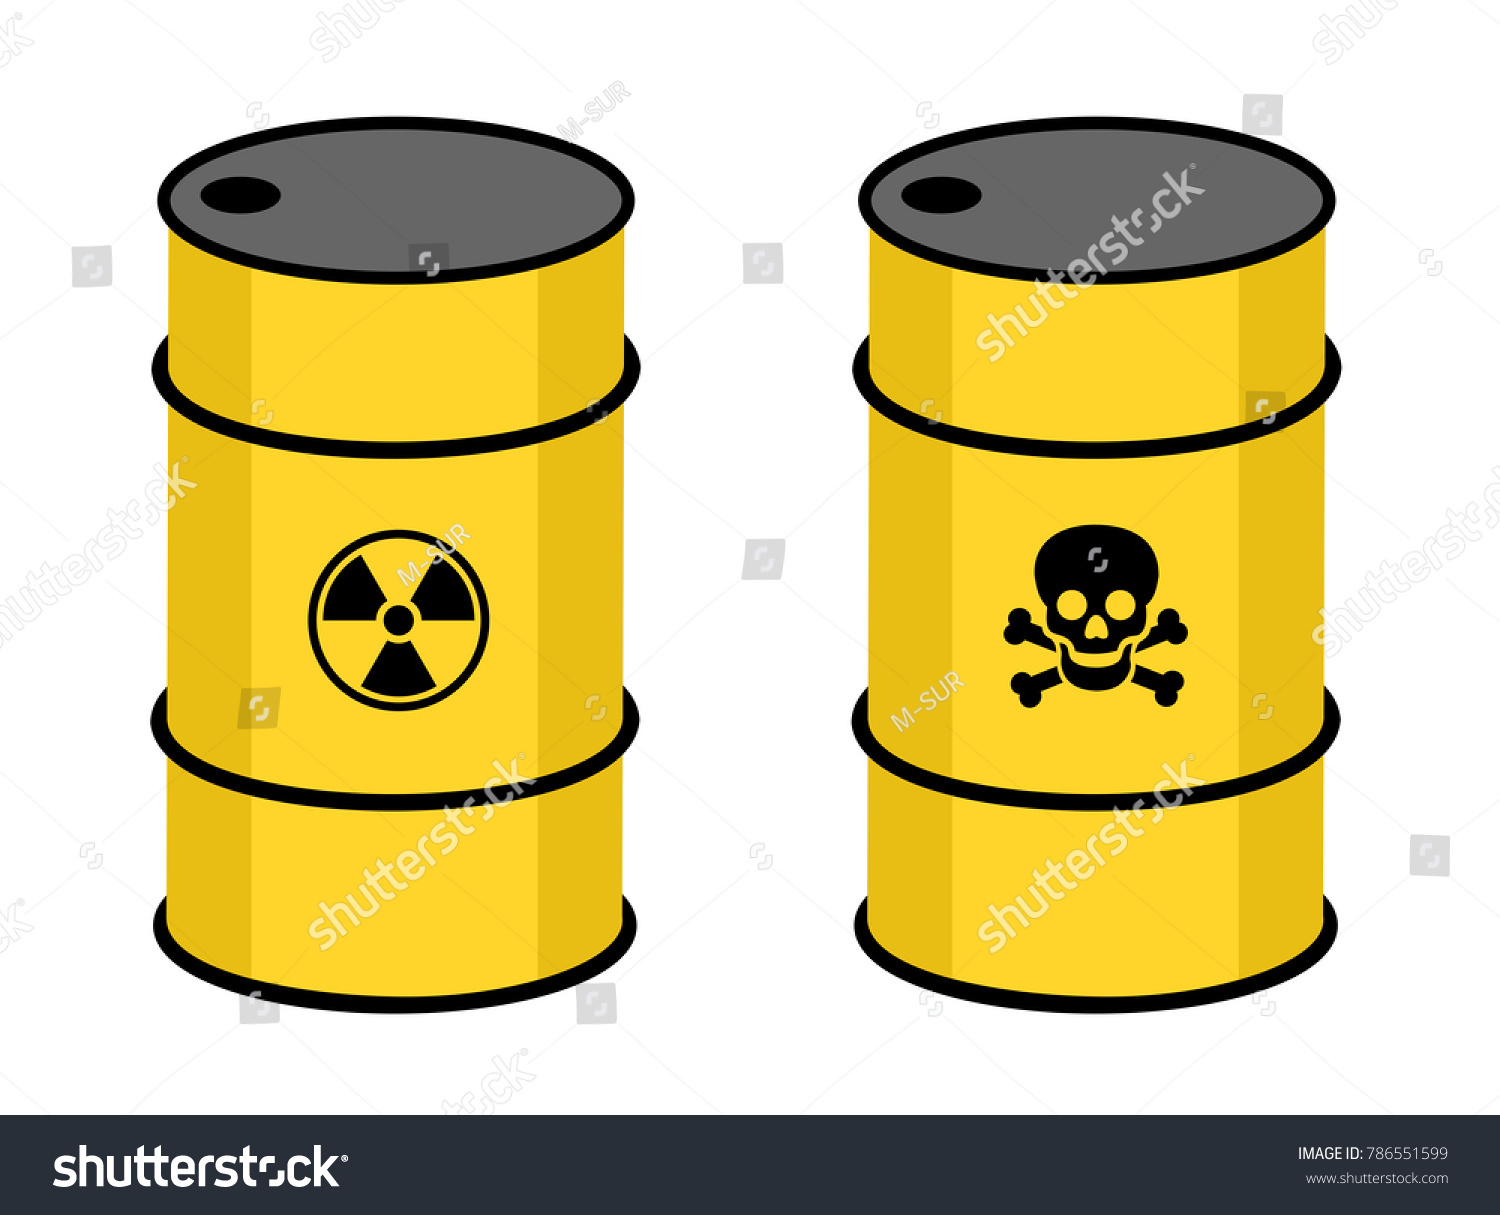 Barrel Radioactive Toxic Substance Symbol Radioactivity Stock Vector